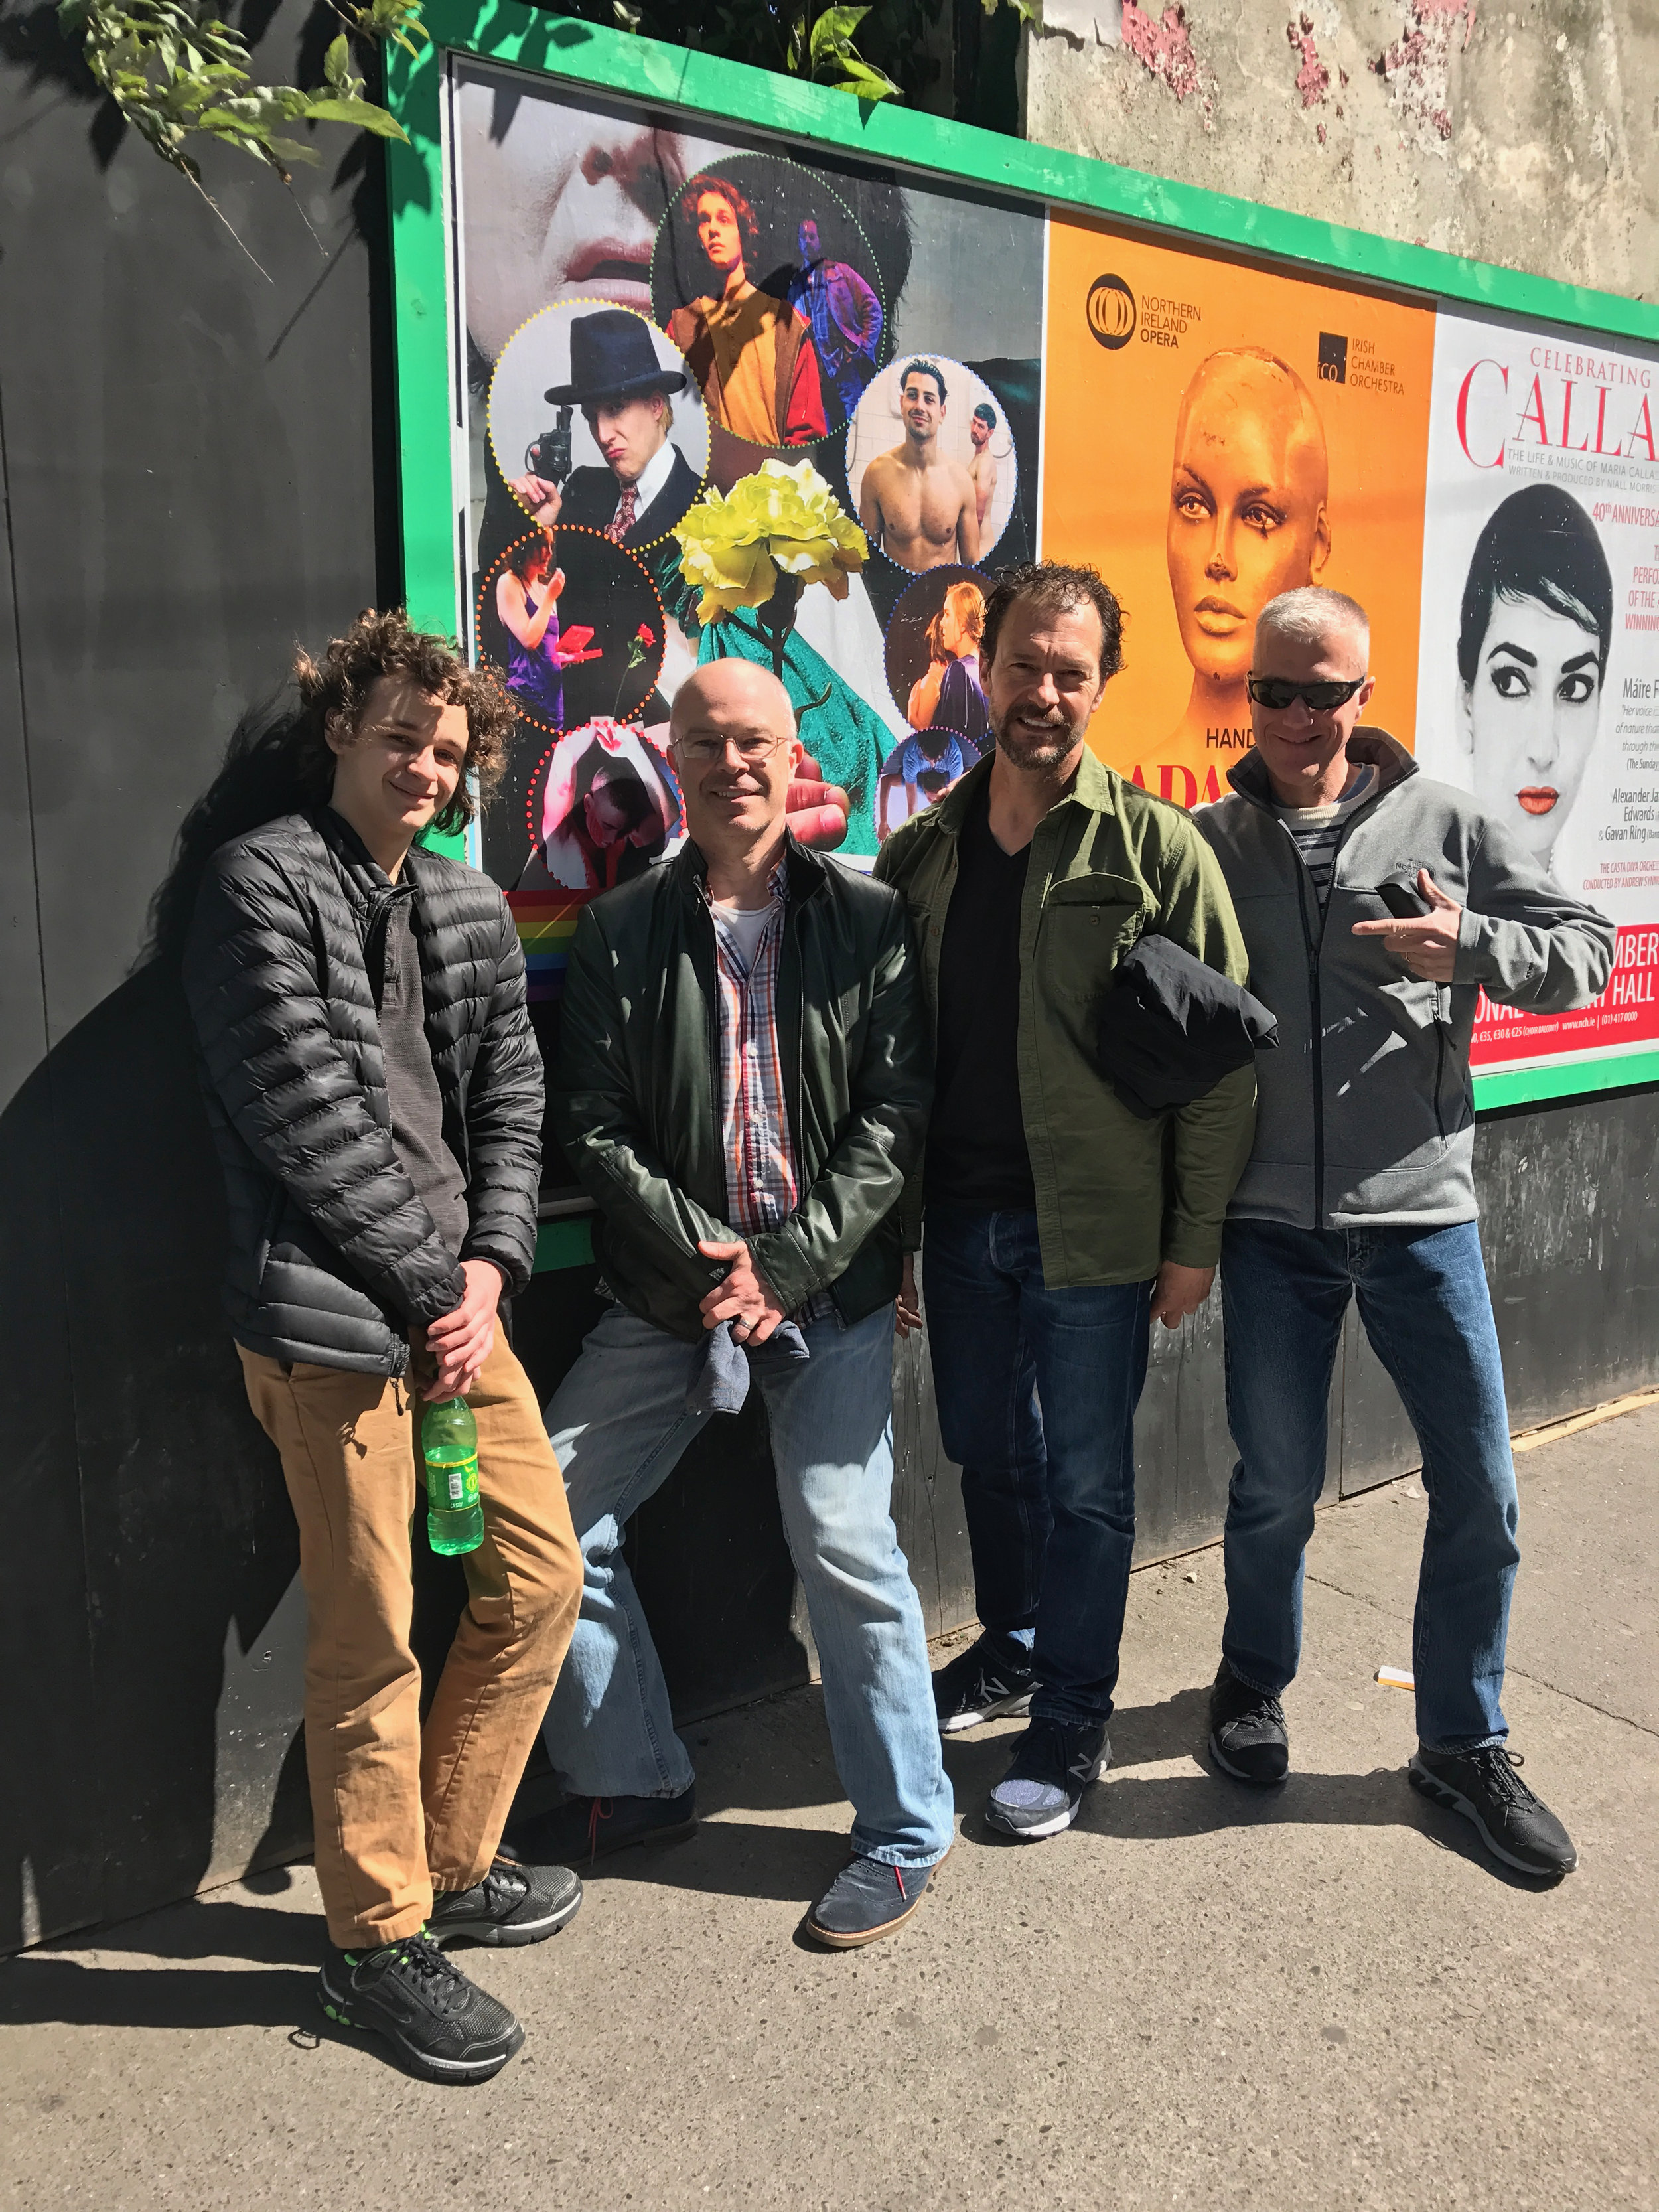 My boys are famous ... seeing themselves on one of the Dublin billboards for the first time – Nick, Ian, Tony and Rob.